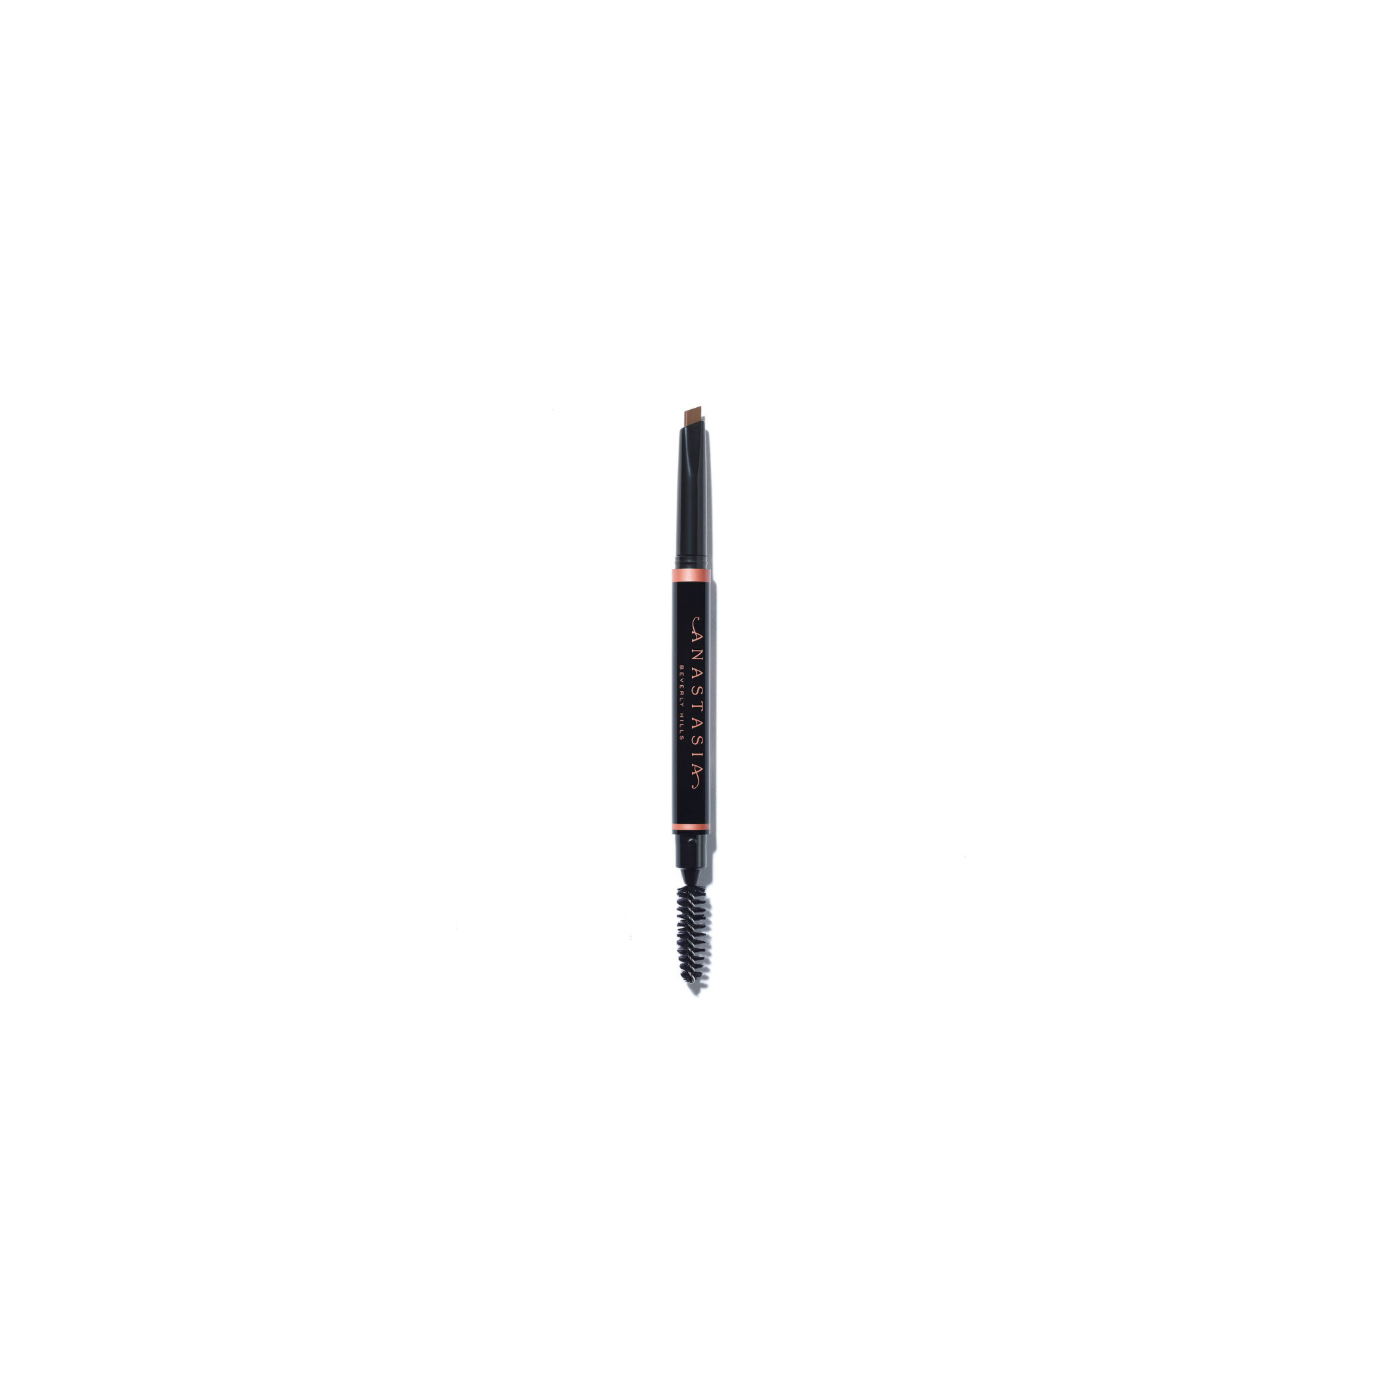 Anastasia Beverly Hills Brow Definer in Blonde